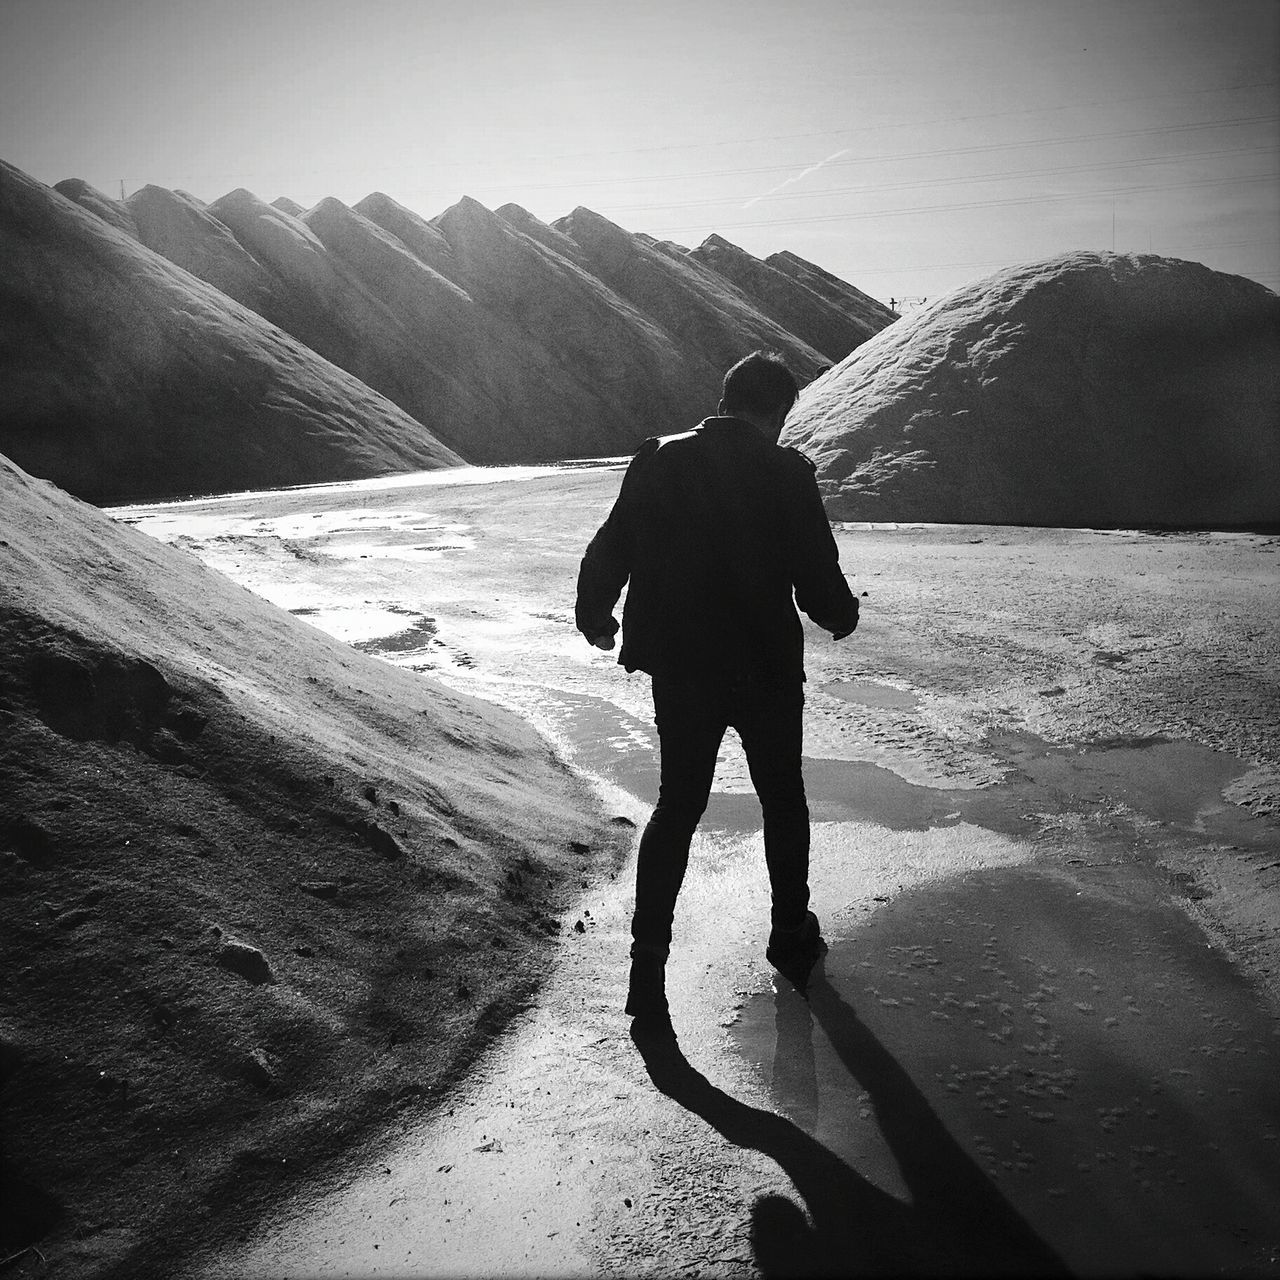 Man On The Moon Blackandwhite Salt Salt Works Shadow Real People Walking Alone... Treading Back View Go Away People Outdoors Landscape White Shine Shillouette Finding New Frontiers